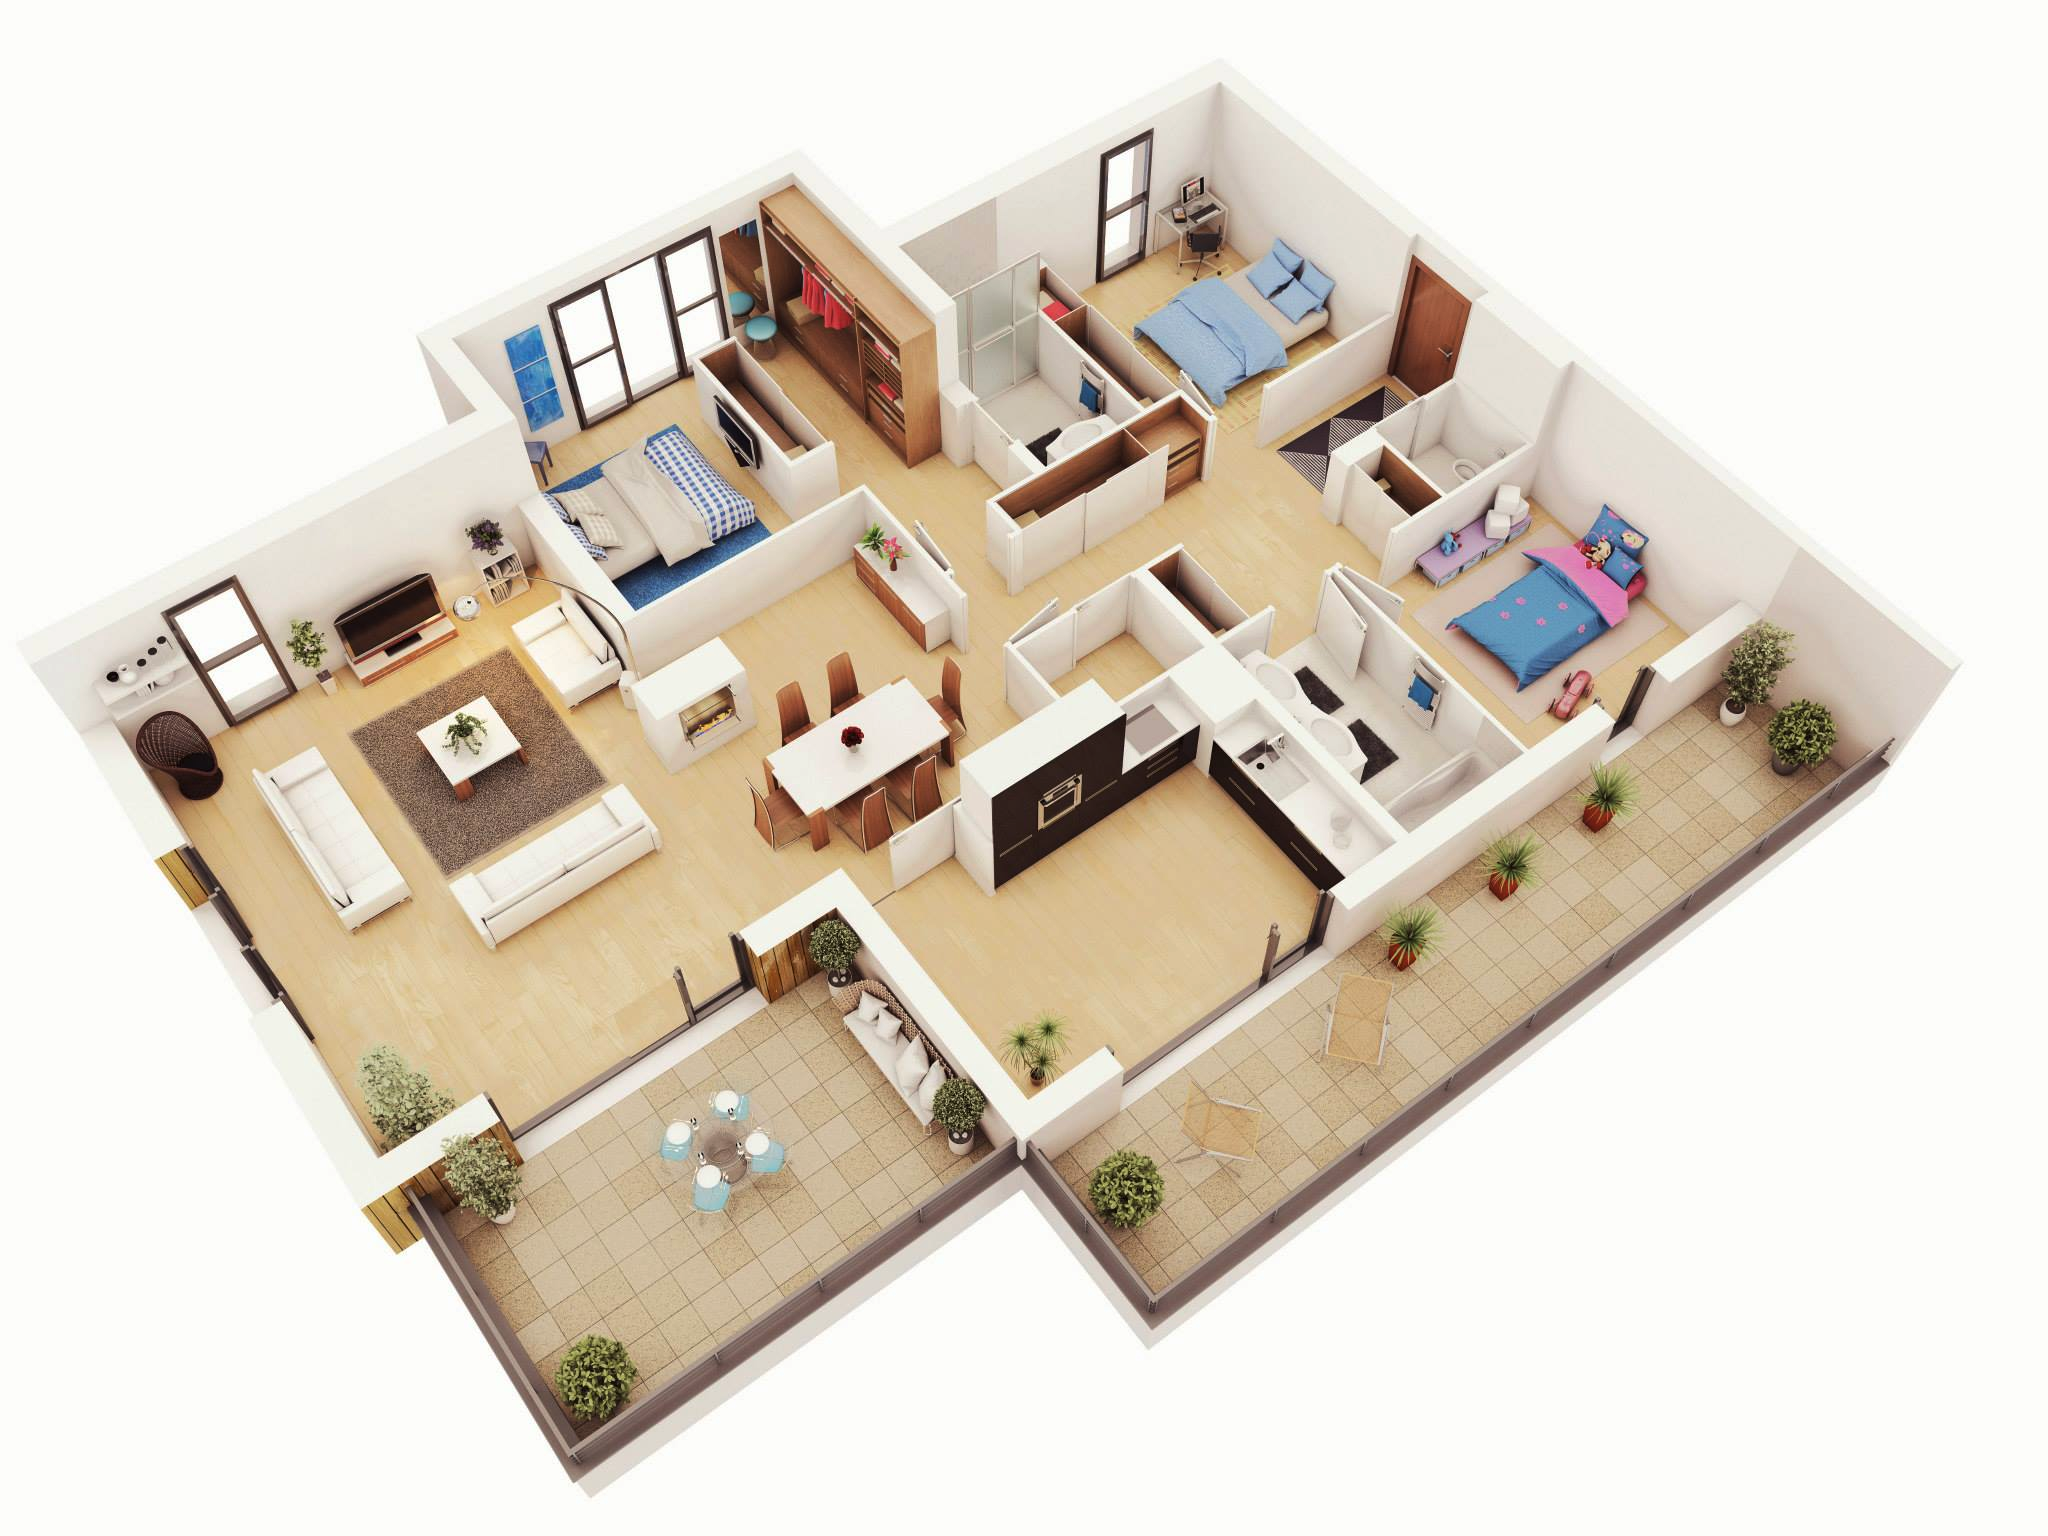 25 more 3 bedroom floor plans - Design A House